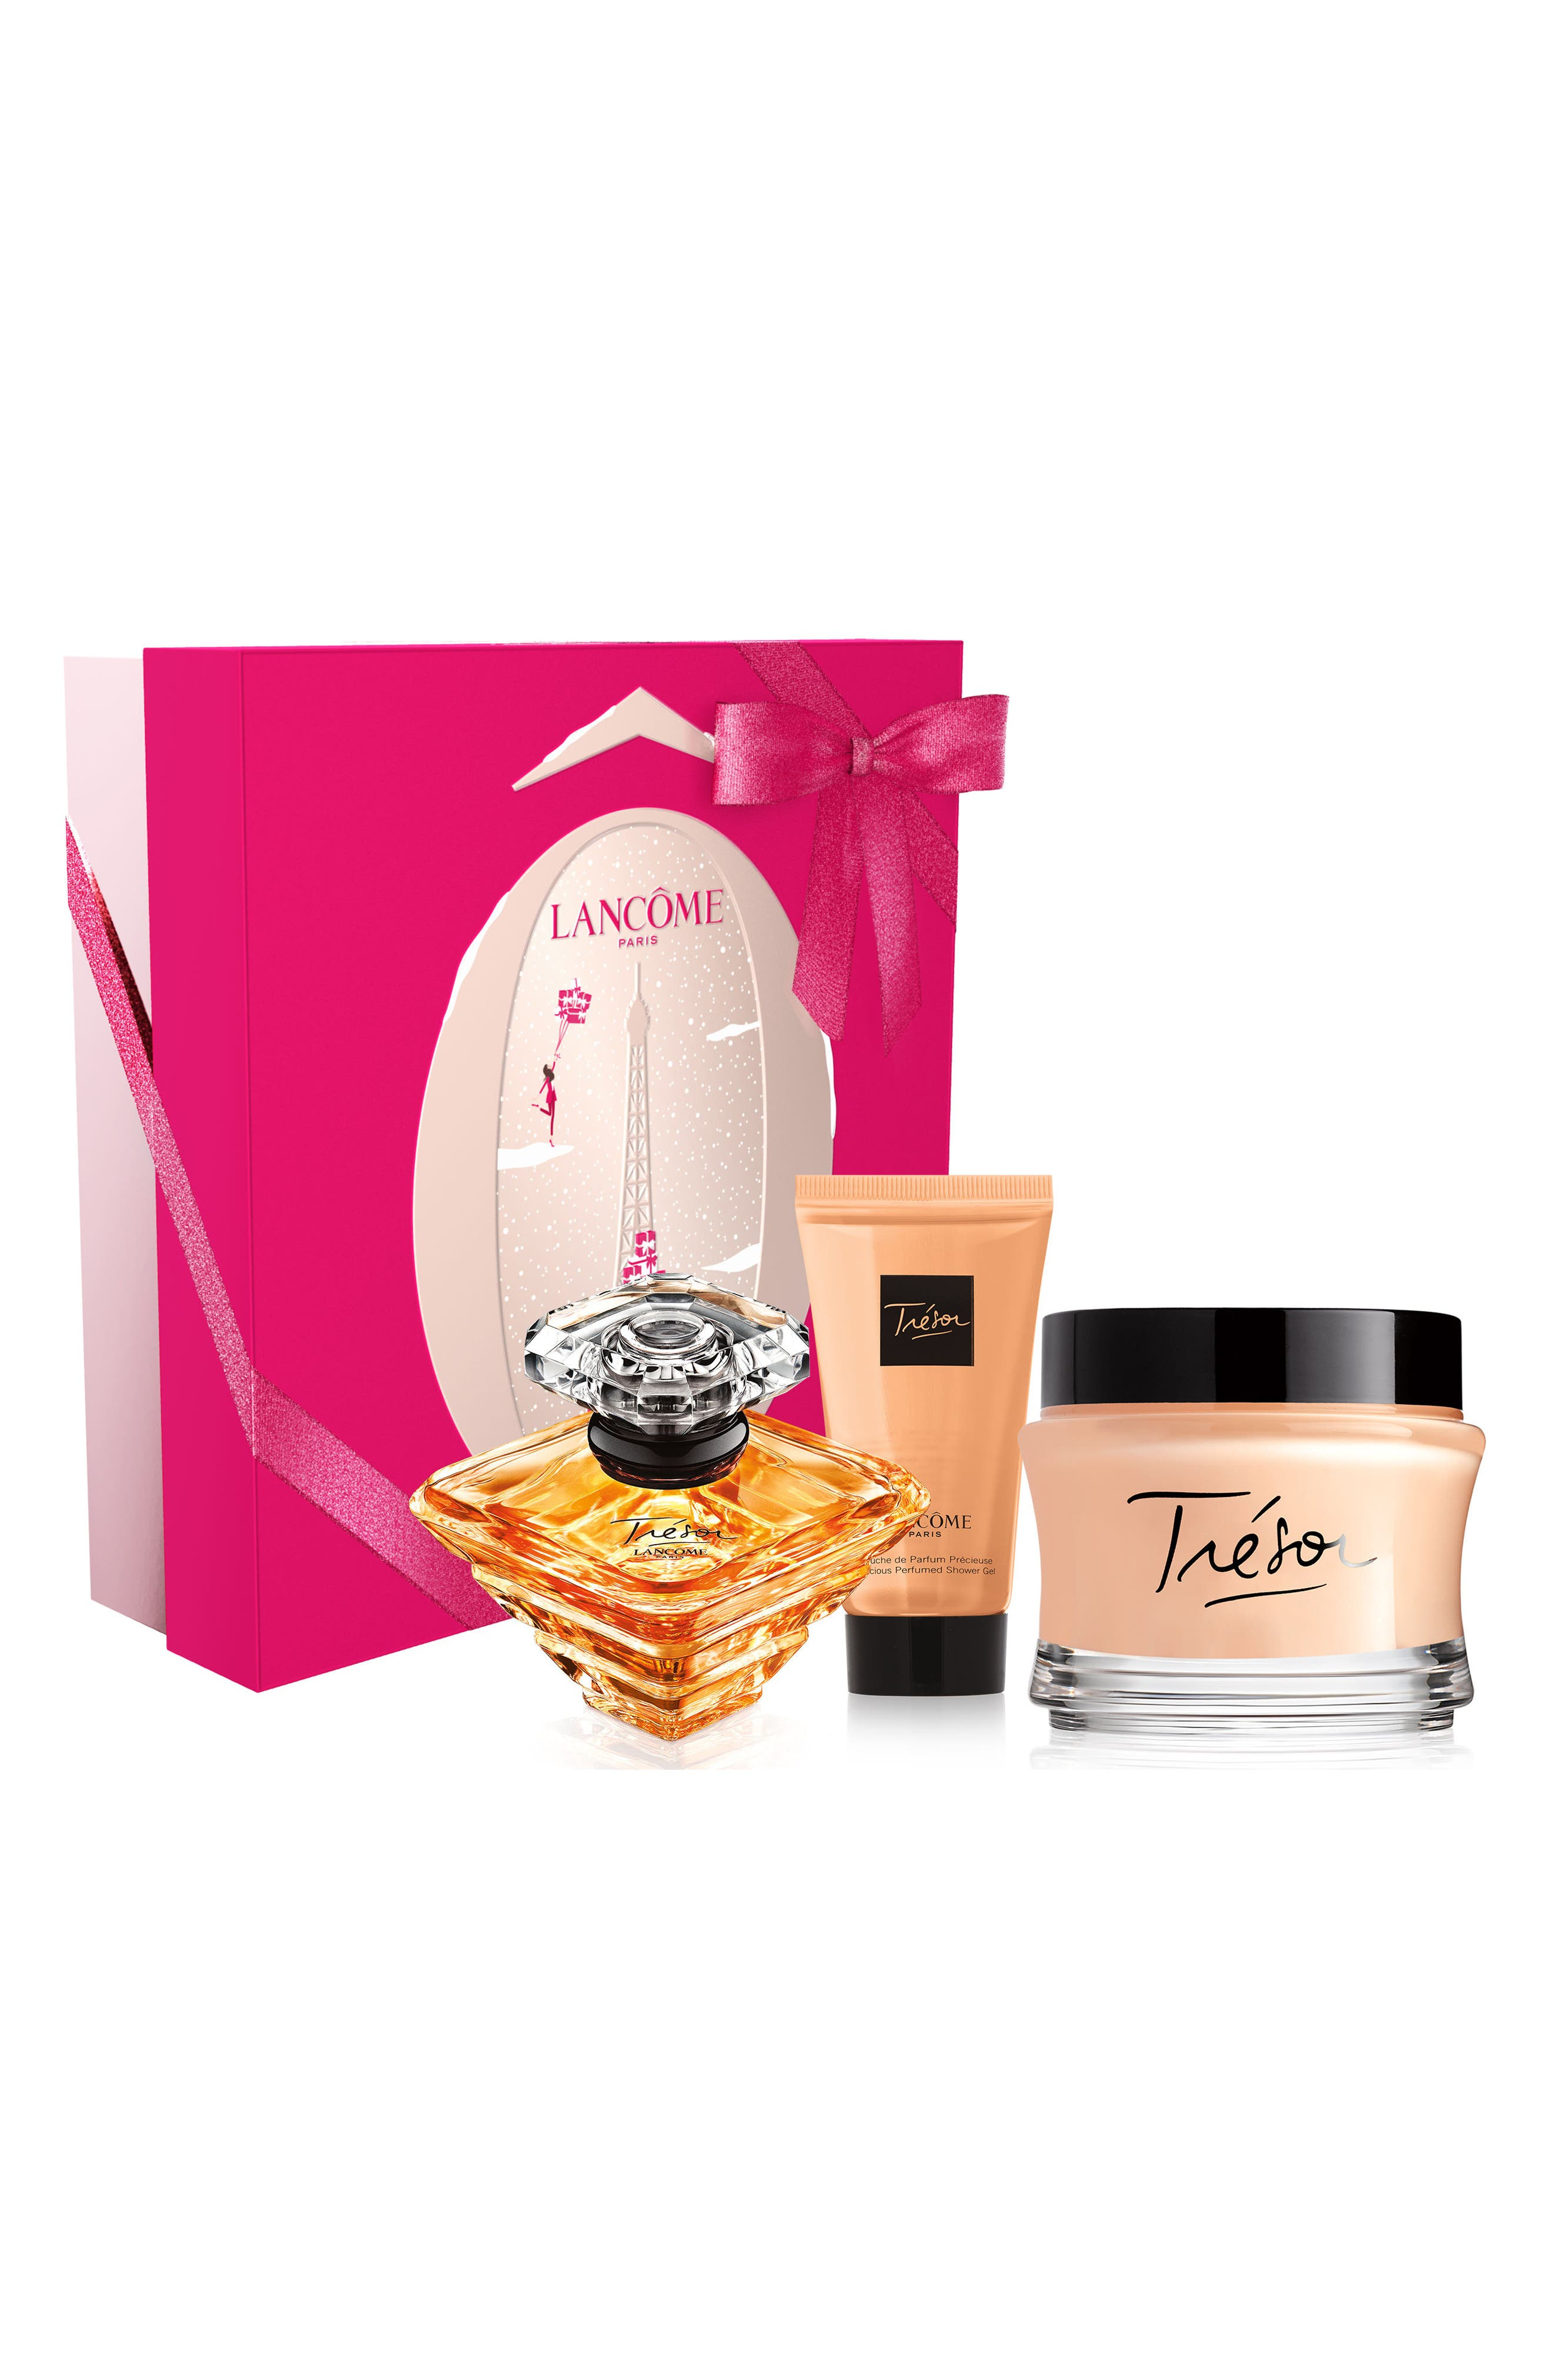 Lancôme Trésor Inspirations Set ($187.50 Value)